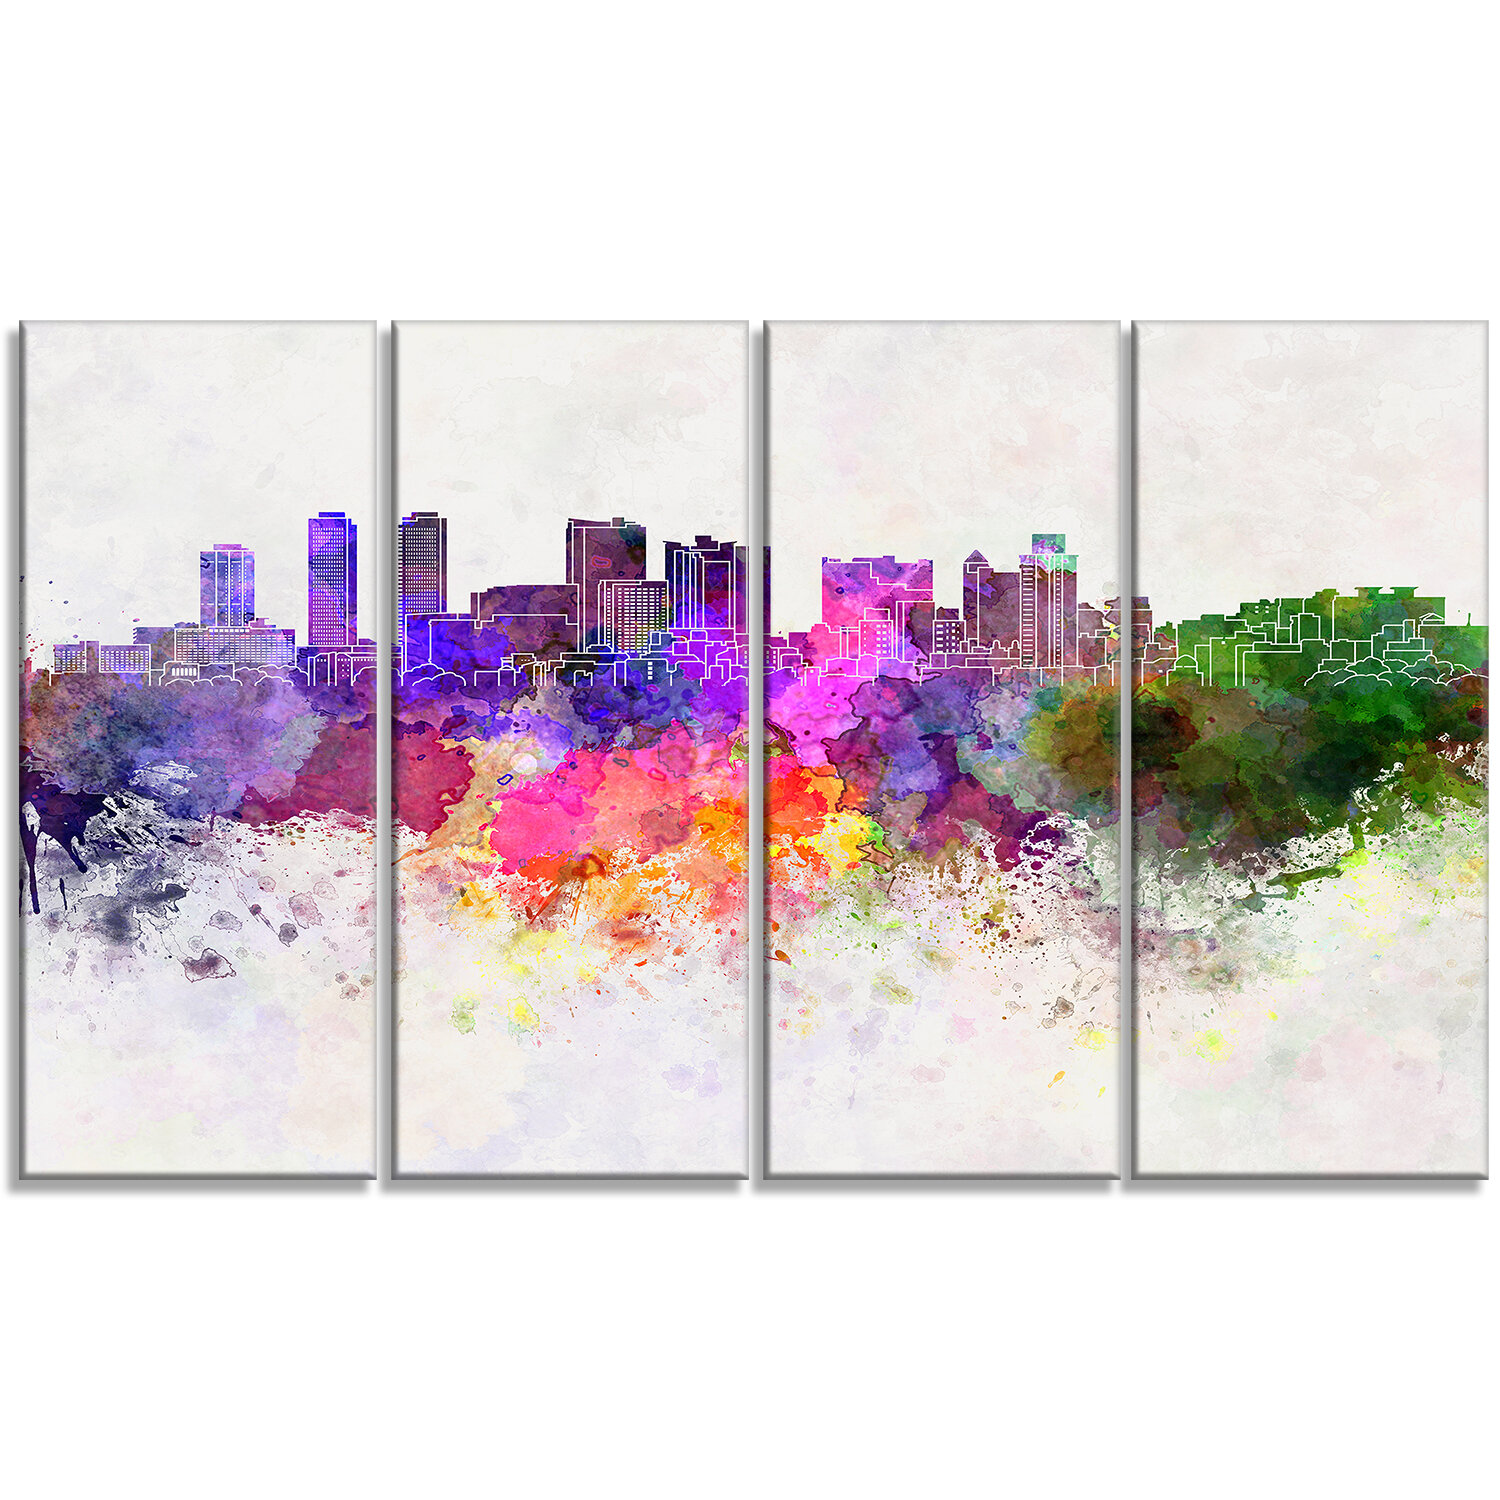 Designart Colombo Skyline Cityscape 4 Piece Painting Print On Wrapped Canvas Set Wayfair